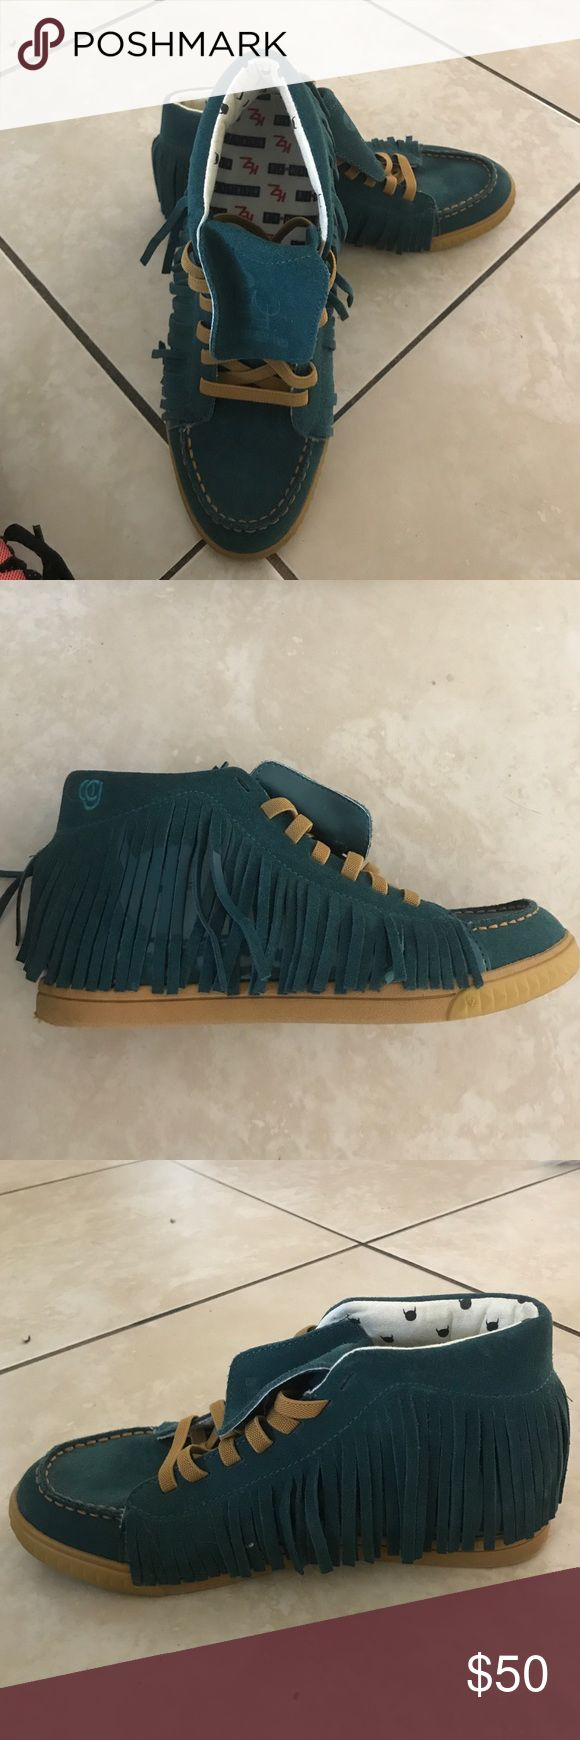 Fringe sneakers Teal and brown suede fun comfortable sneakers kz kruzin Shoes Moccasins